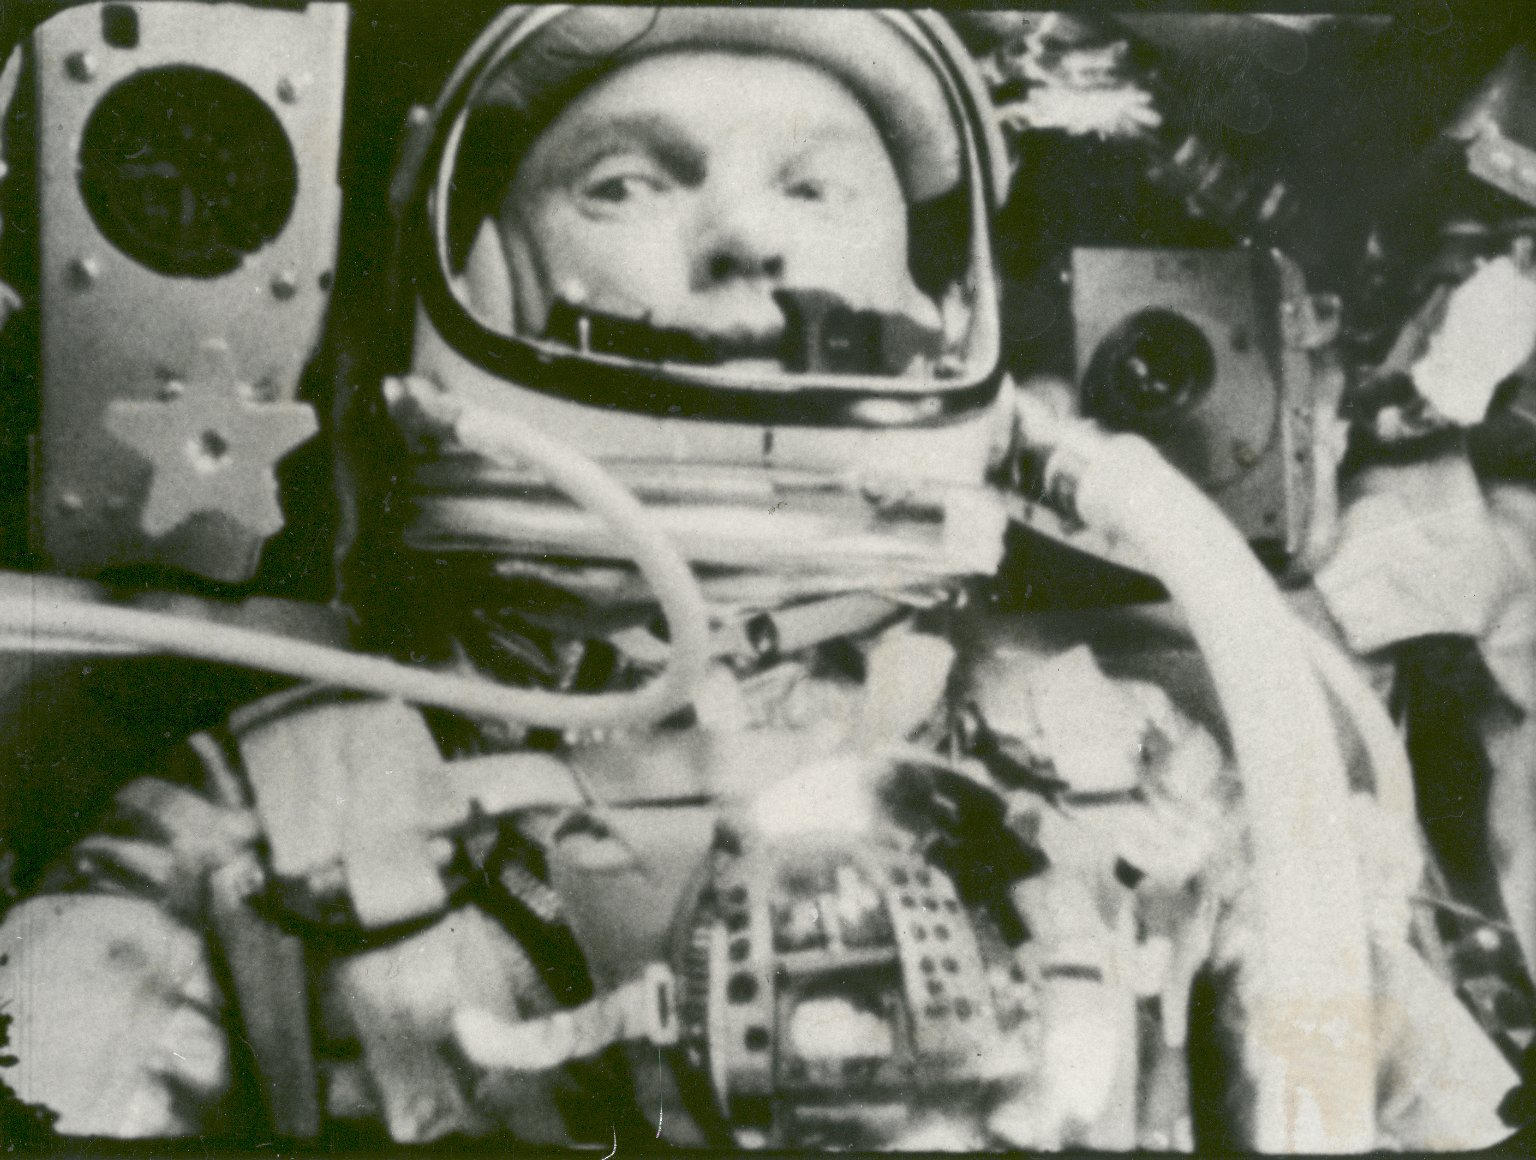 John Glenn's Historic Spaceflight Was No Sure Thing